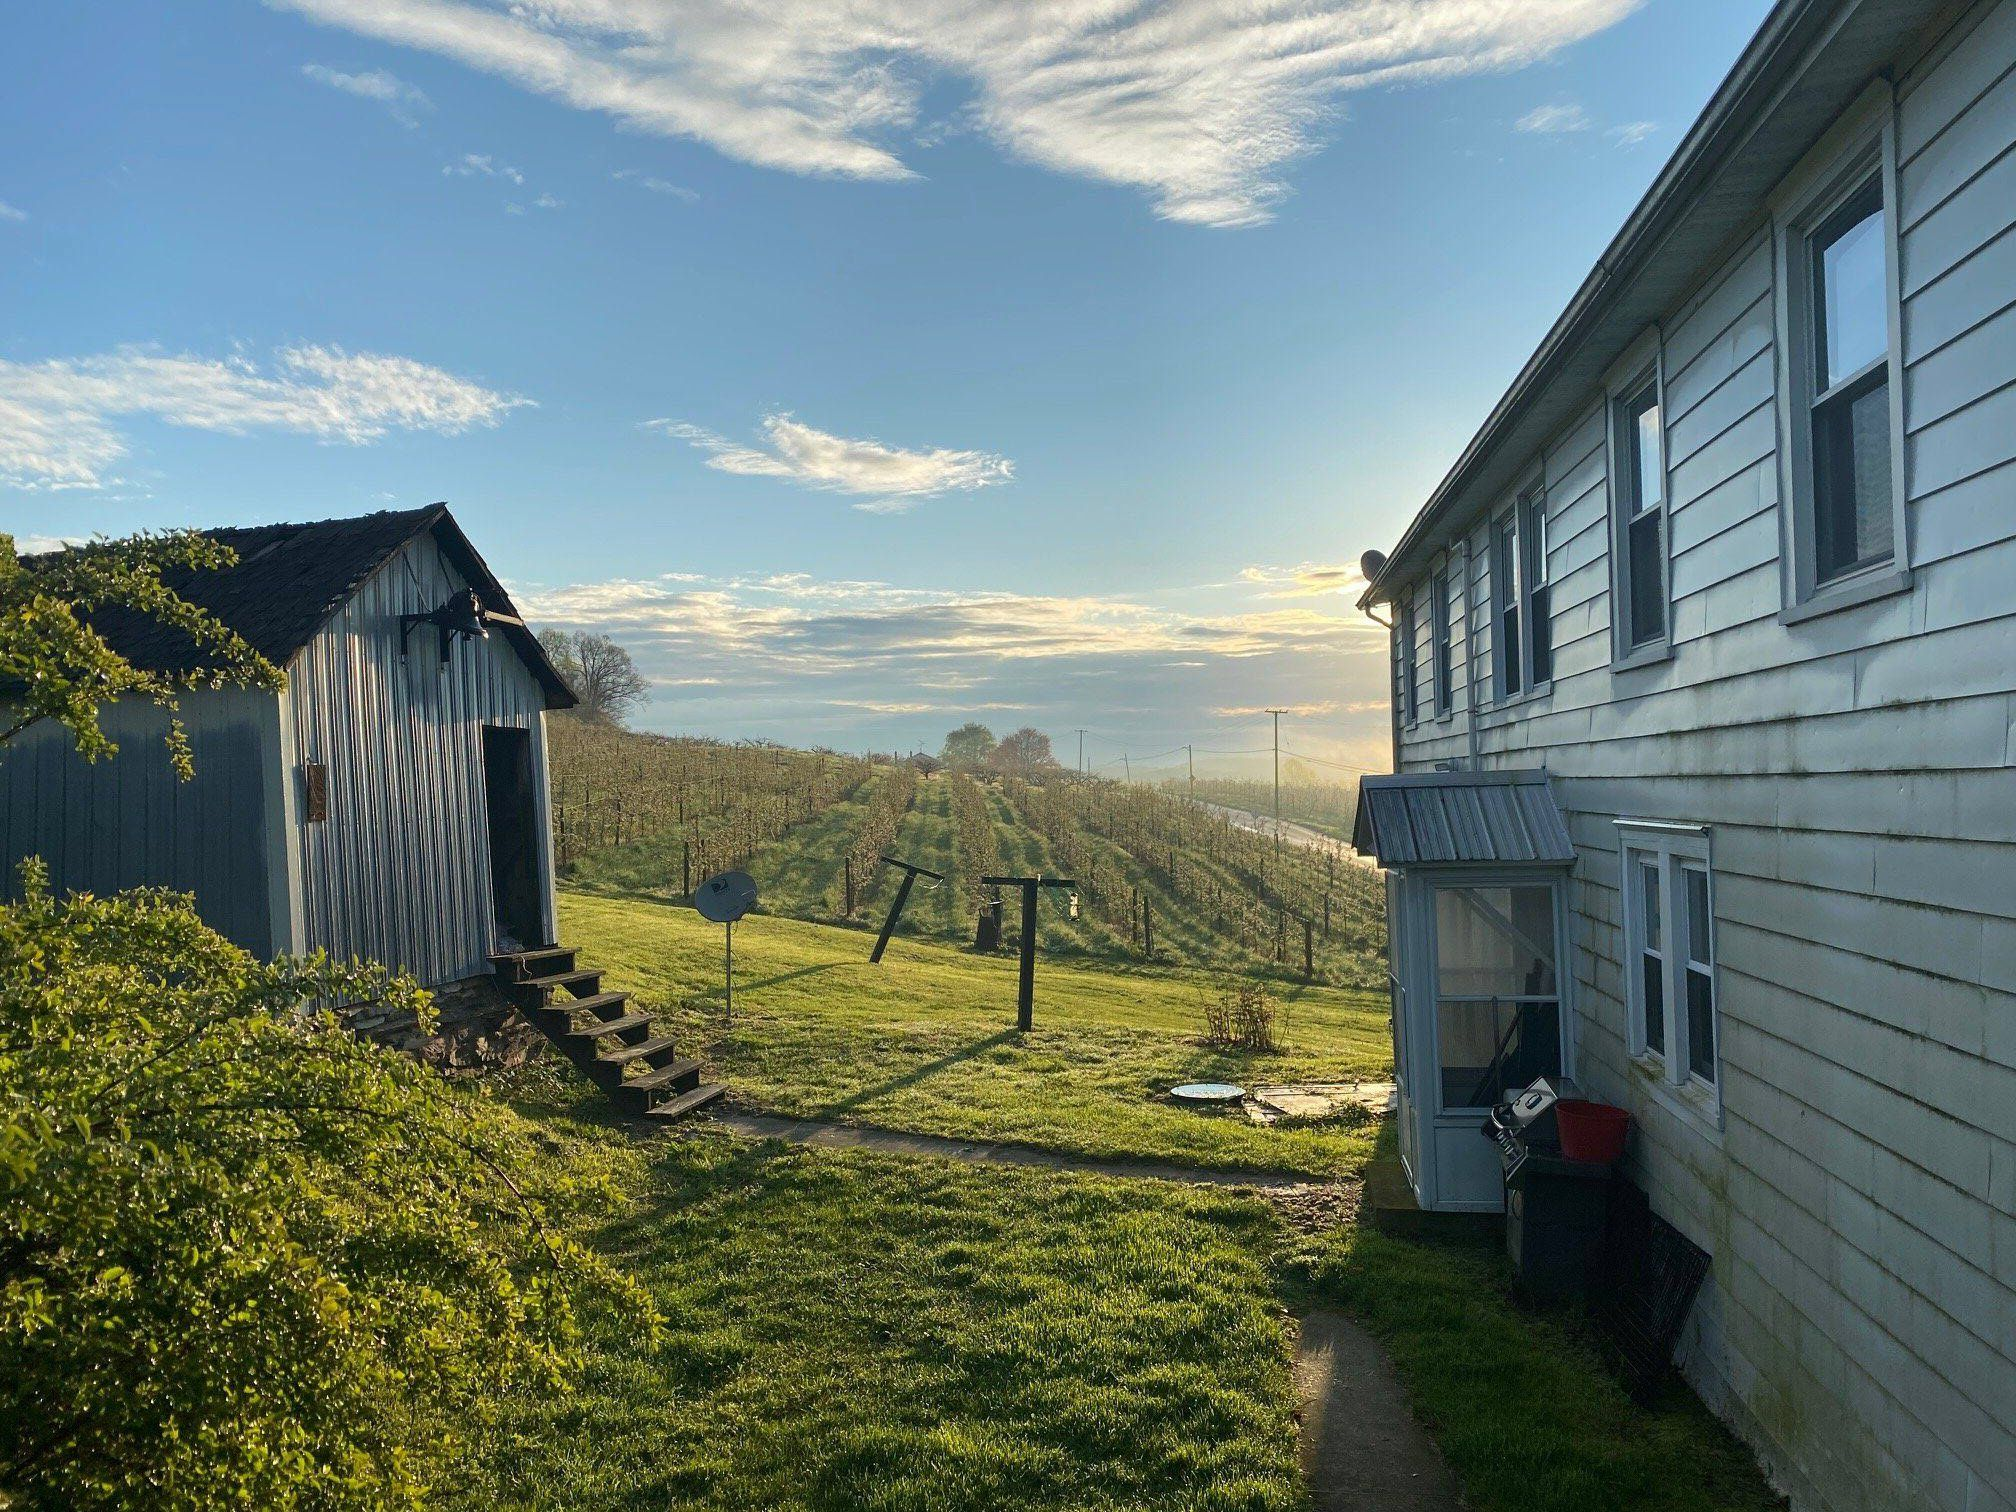 Previous Happening: Farm Happenings for May 7, 2020